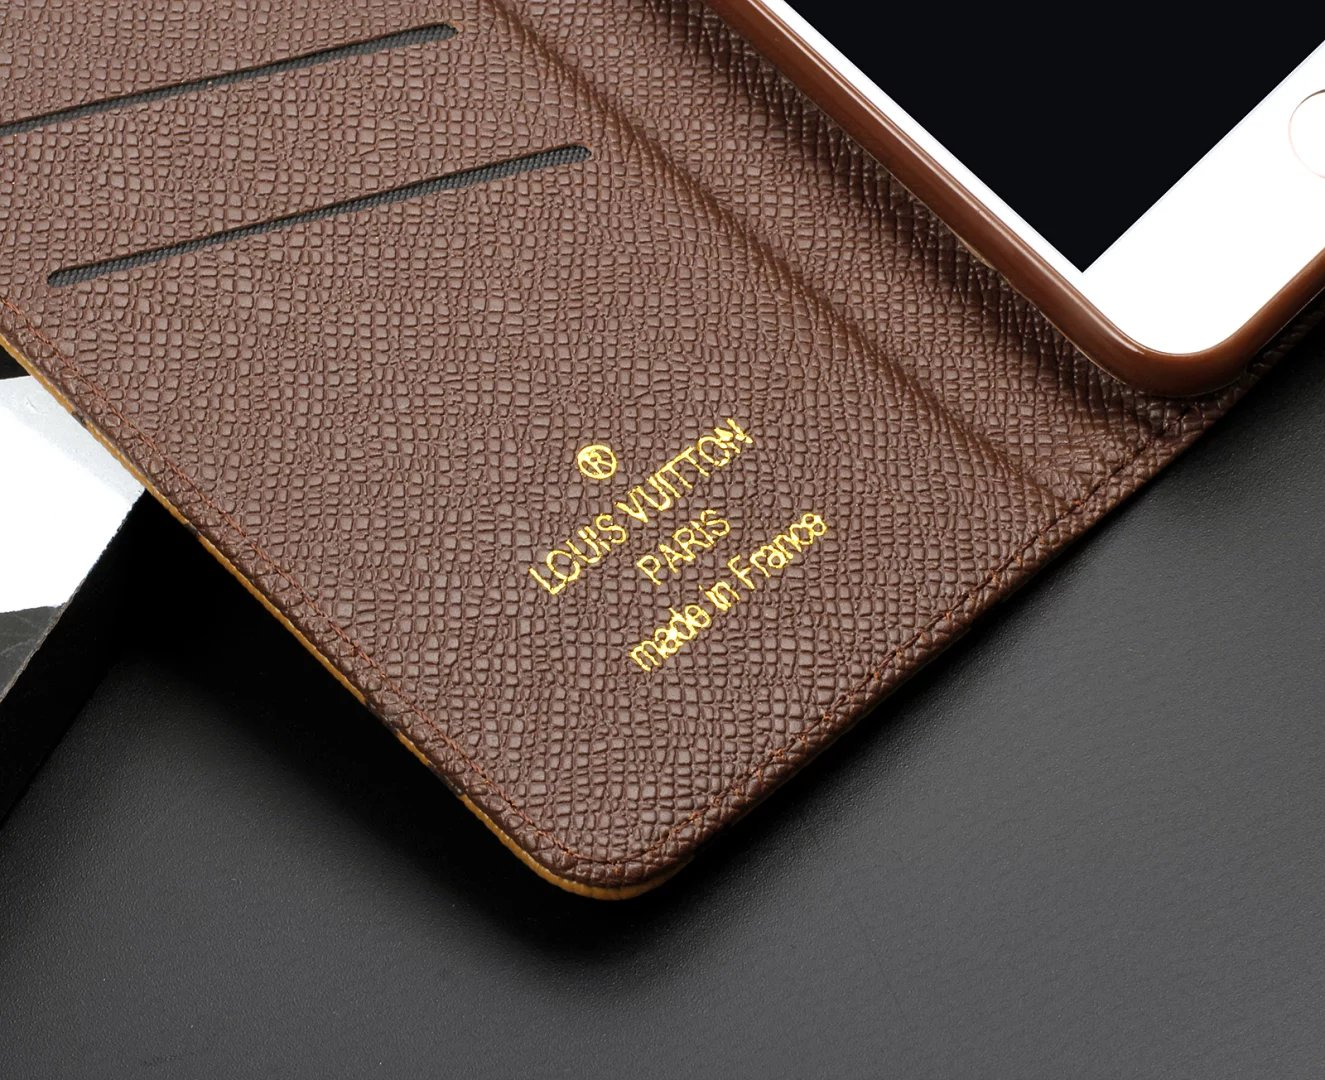 schutzhülle für iphone iphone lederhülle Louis Vuitton iphone7 Plus hülle iphone 7 Plus over wech7ln iphone hüllen schweiz samsung galaxy s3 cover 7lbst gestalten iphone 6 kamera iphone hülle designer wann kommt neues iphone